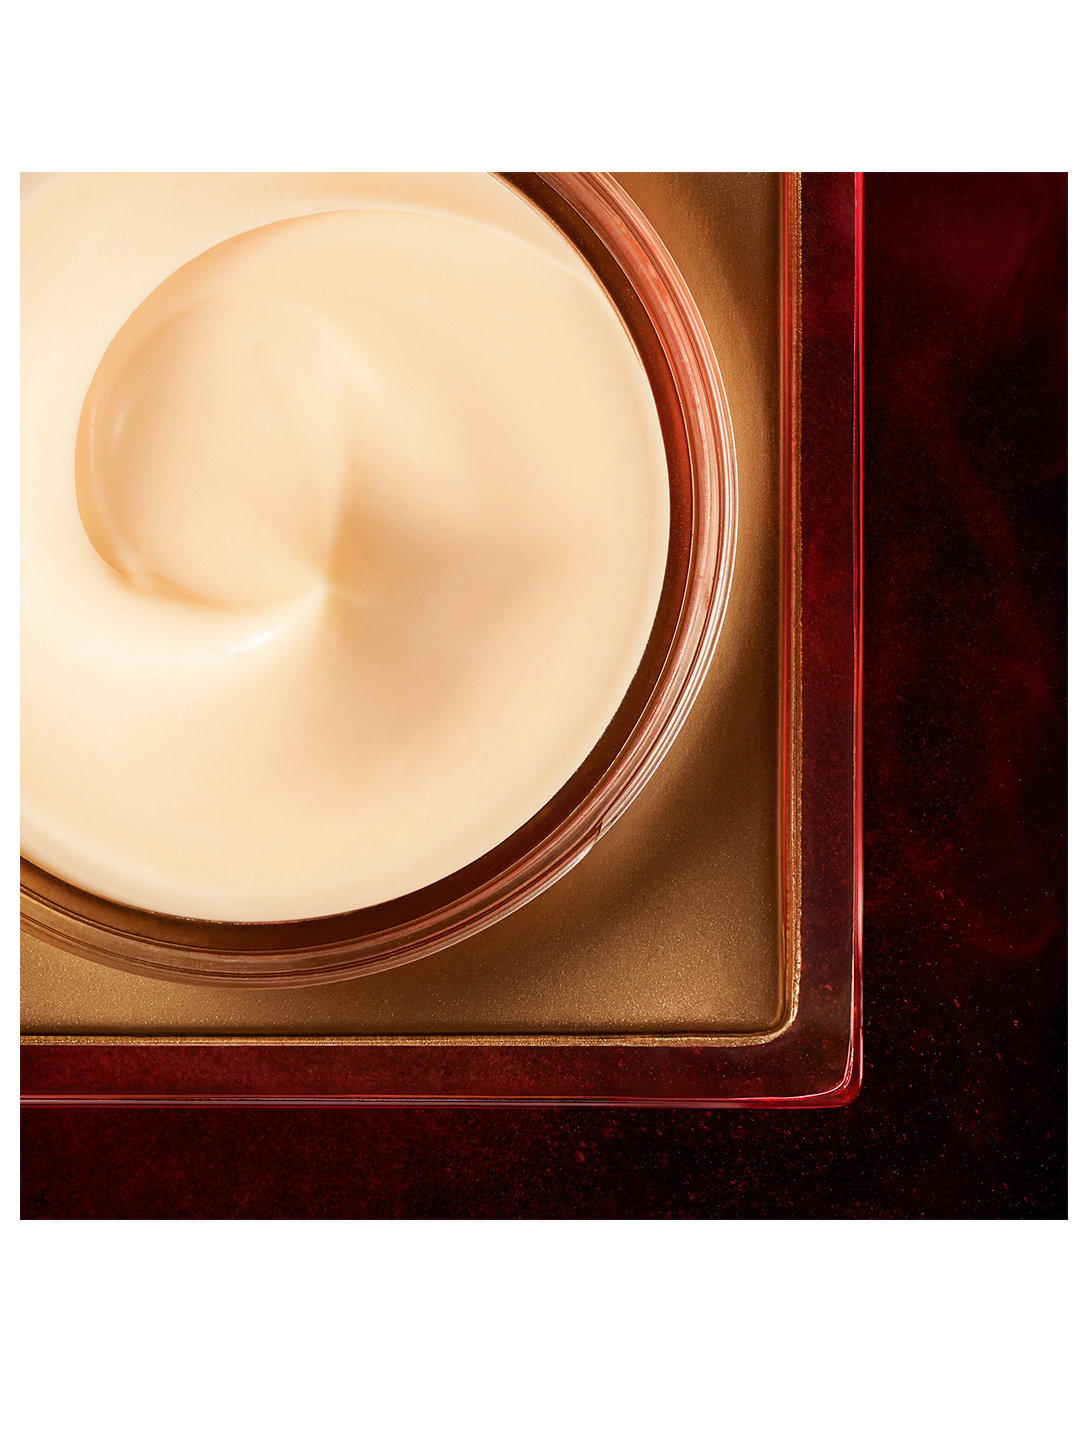 YVES SAINT LAURENT Or Rouge Eye Cream Beauty